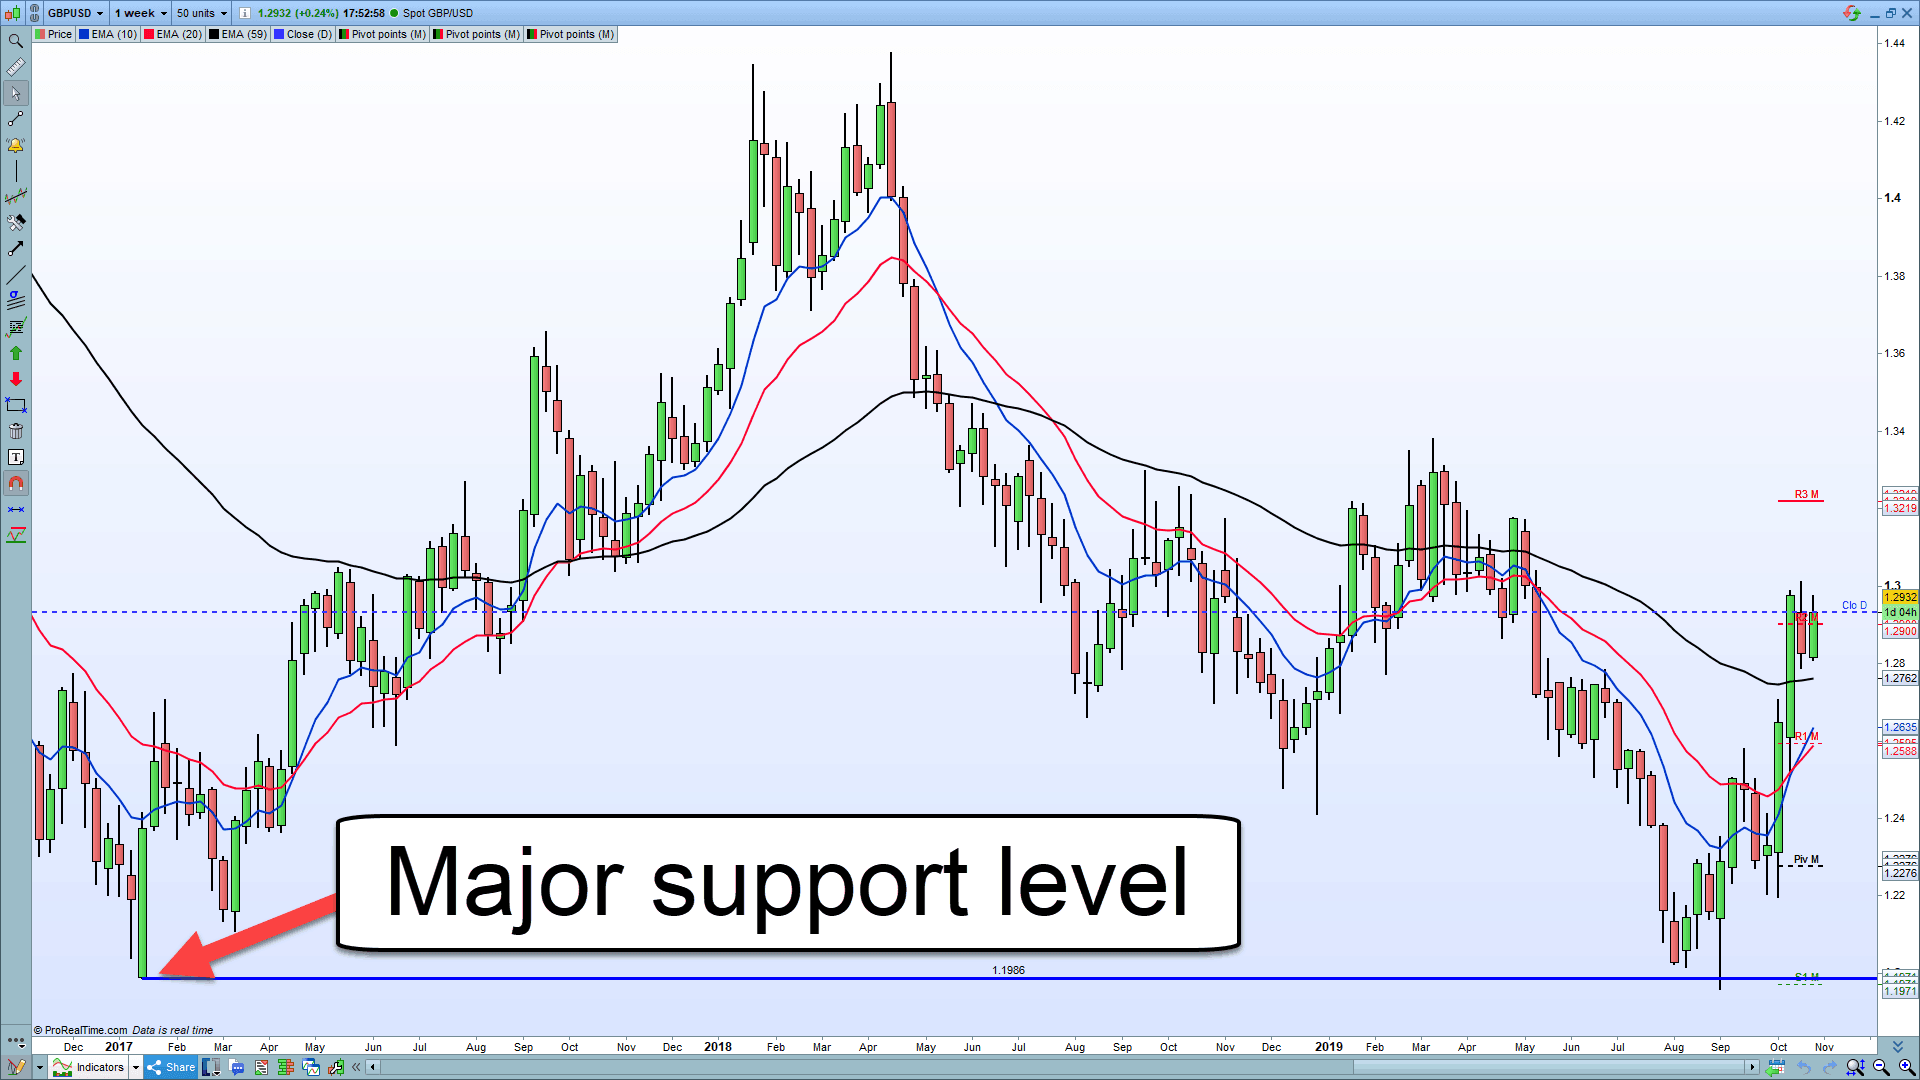 A picture showing weekly support on GBPUSD to show a fakeout trade.